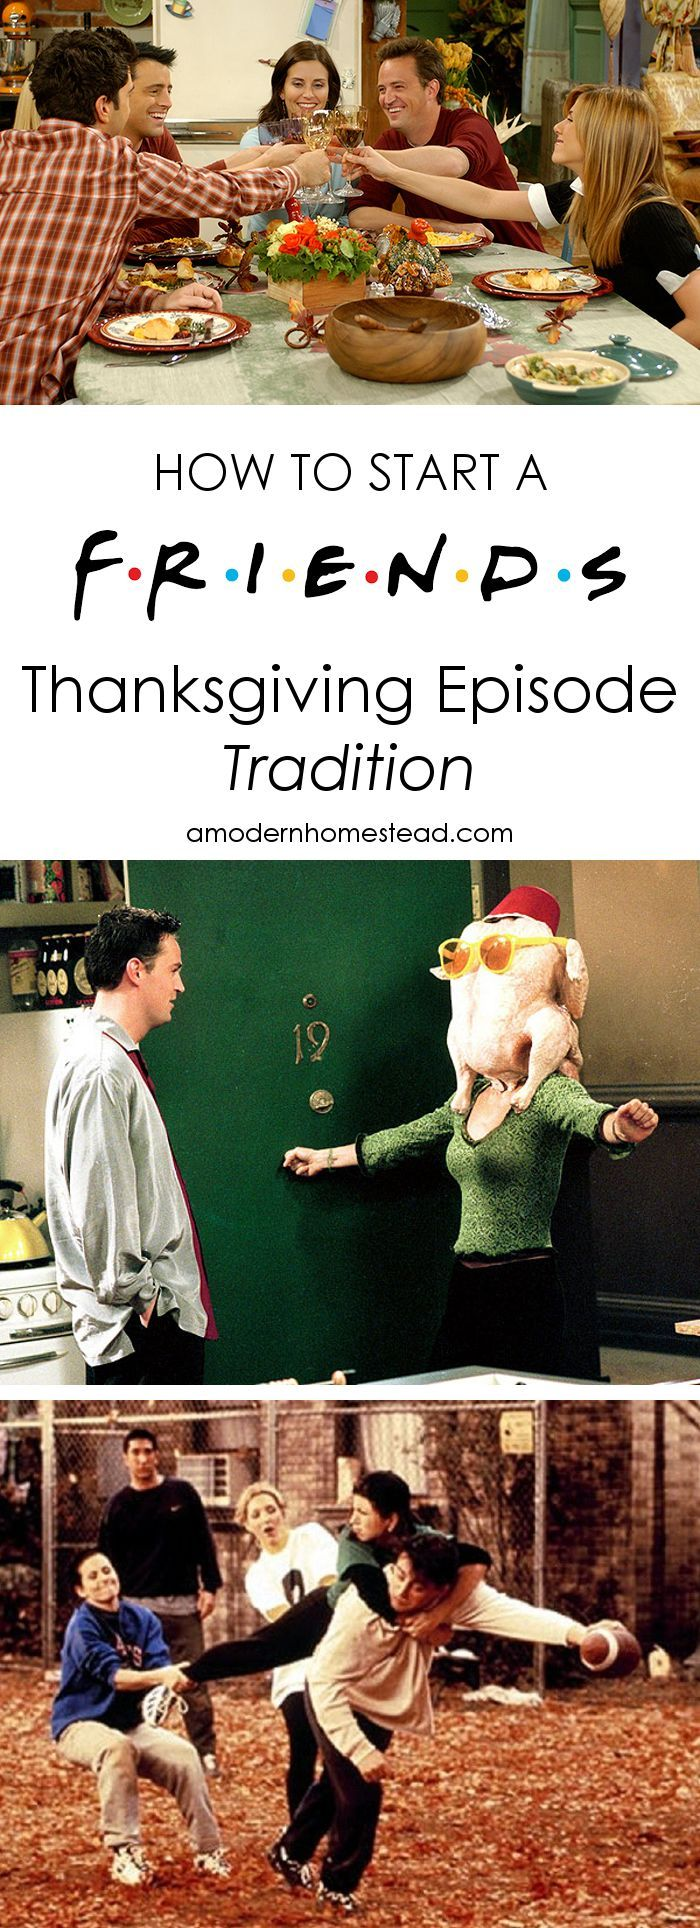 Christmas has a ton of traditions, it's time to start some Thanksgiving traditions too! And what a better way to start than with the Friends Thanksgiving episodes! Plus, it's free!